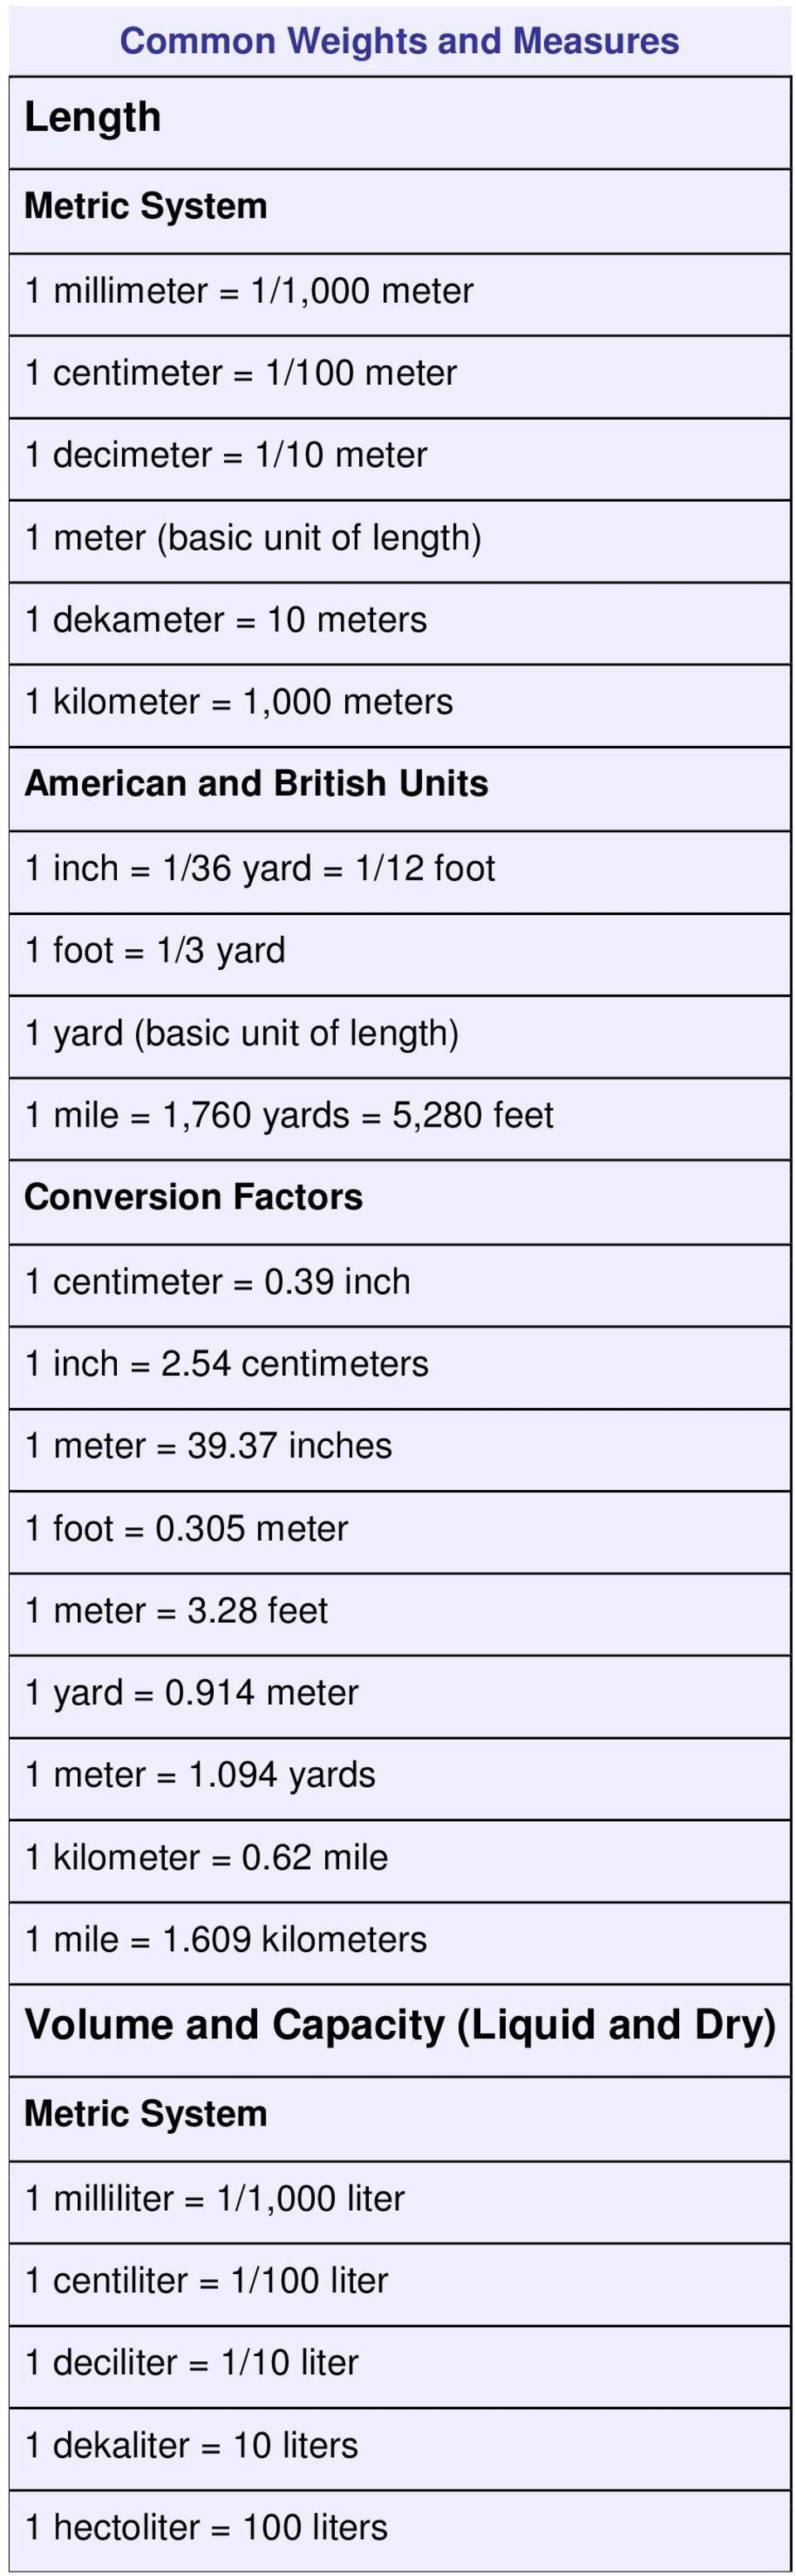 centimeter = 0.39 inch 1 inch = 2.54 centimeters 1 meter = 39.37 inches 1 foot = 0.305 meter 1 meter = 3.28 feet 1 yard = 0.914 meter 1 meter = 1.094 yards 1 kilometer = 0.